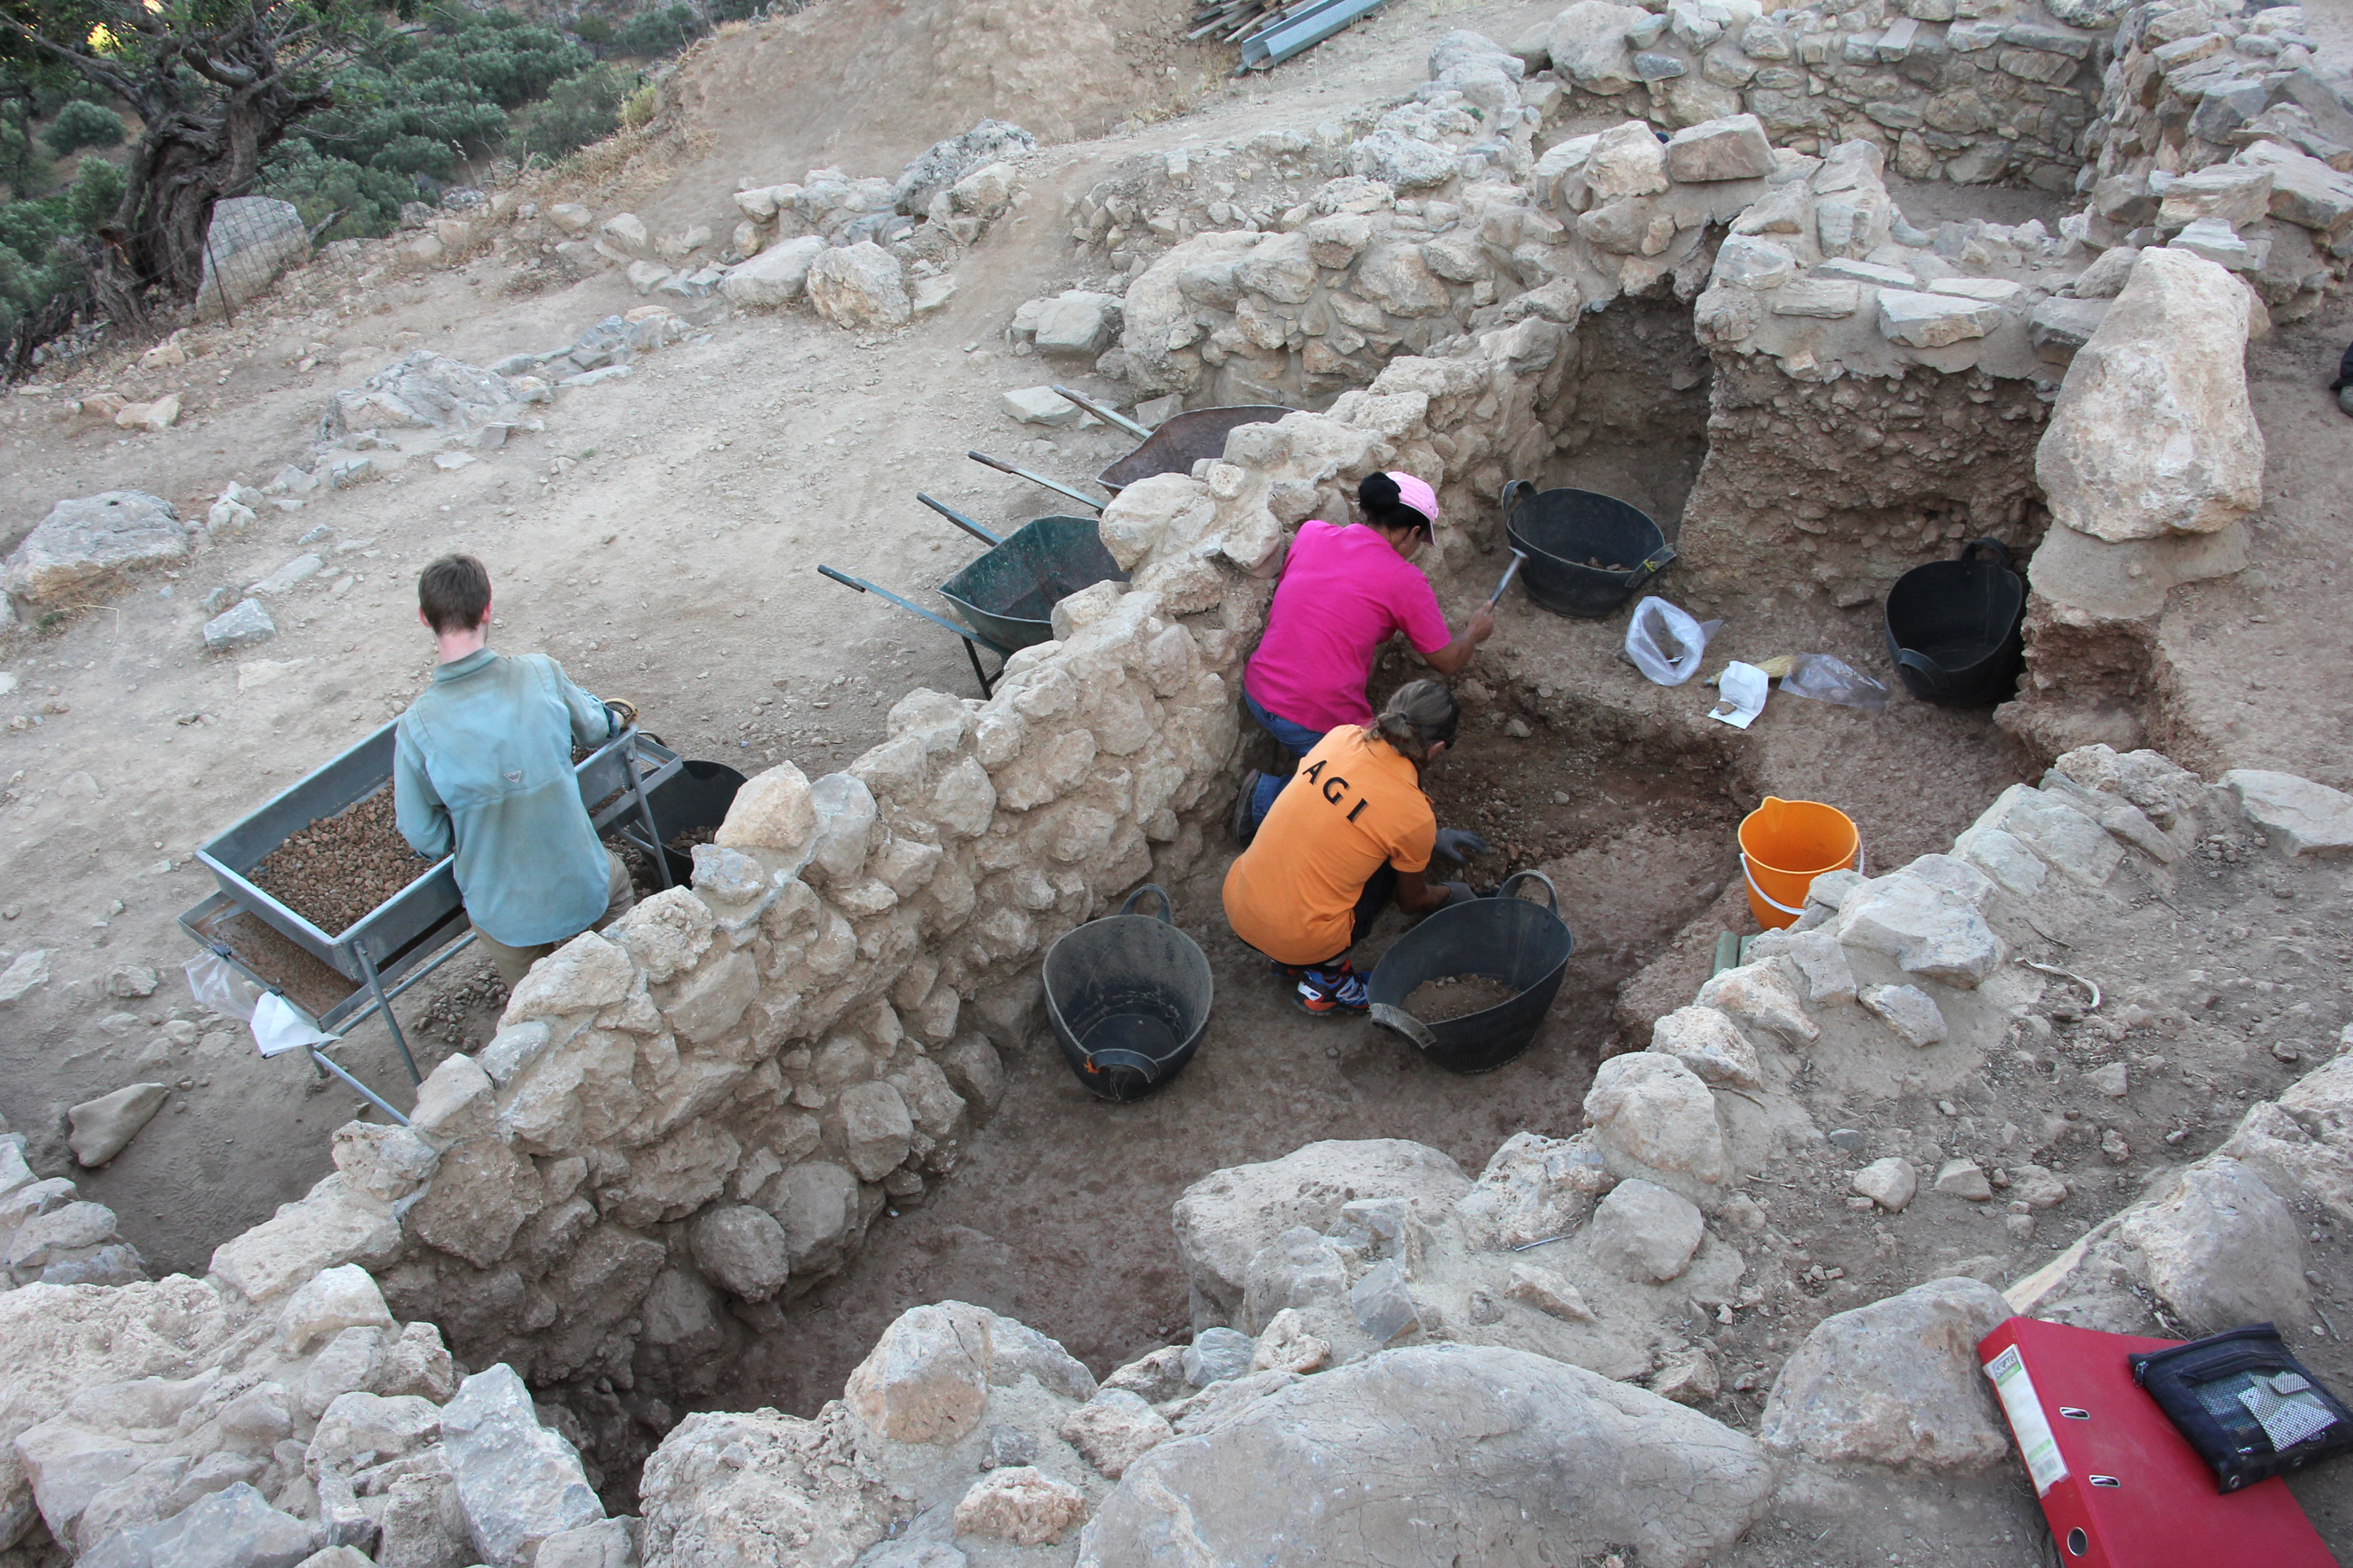 Professor Donald Haggis leads ongoing archaeological excavations at Azoria, an early Greek city located on the island of Crete.